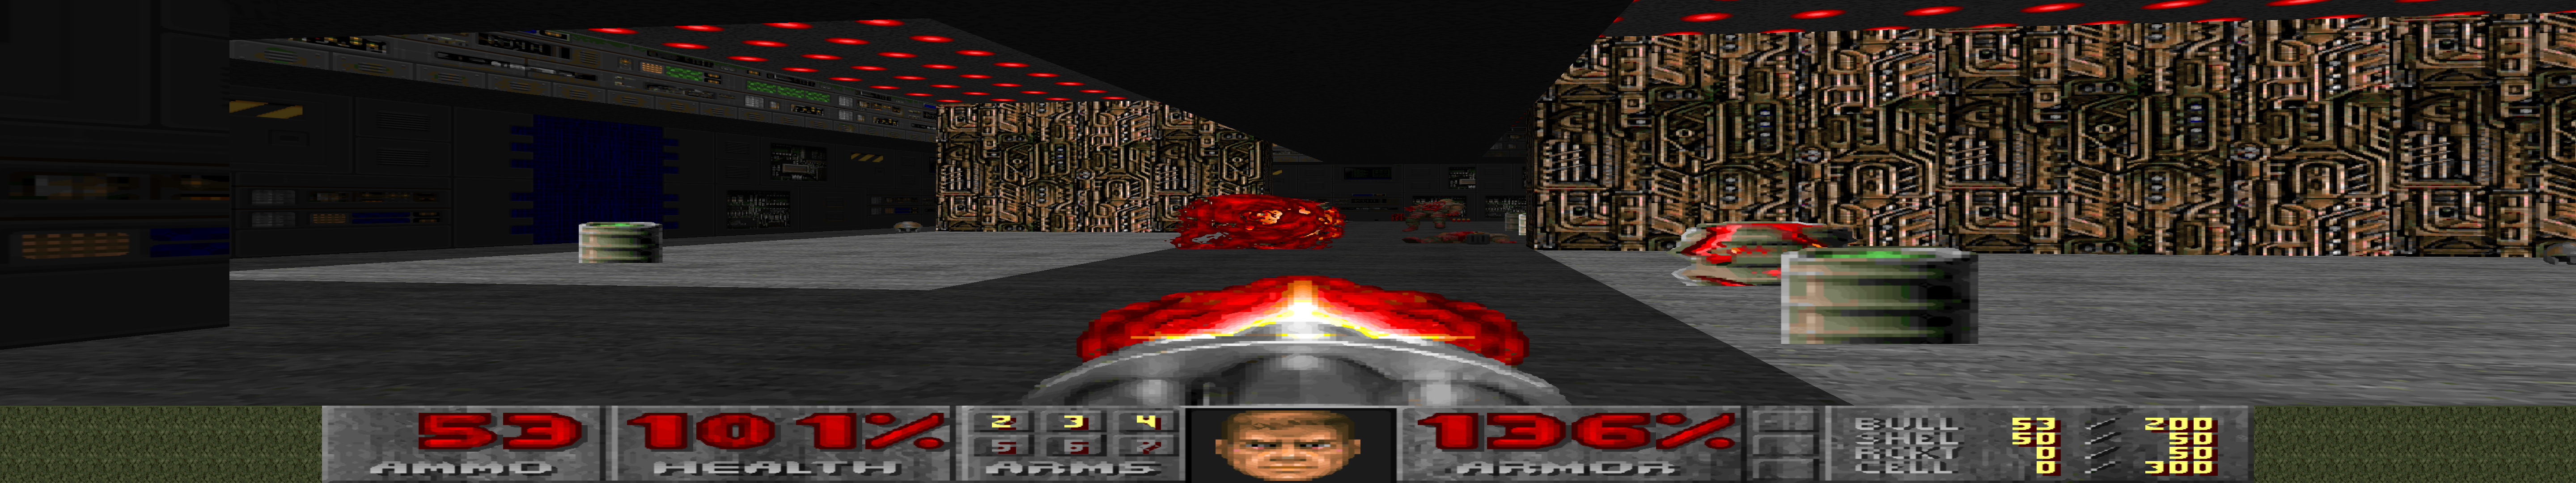 doom_lpc.png